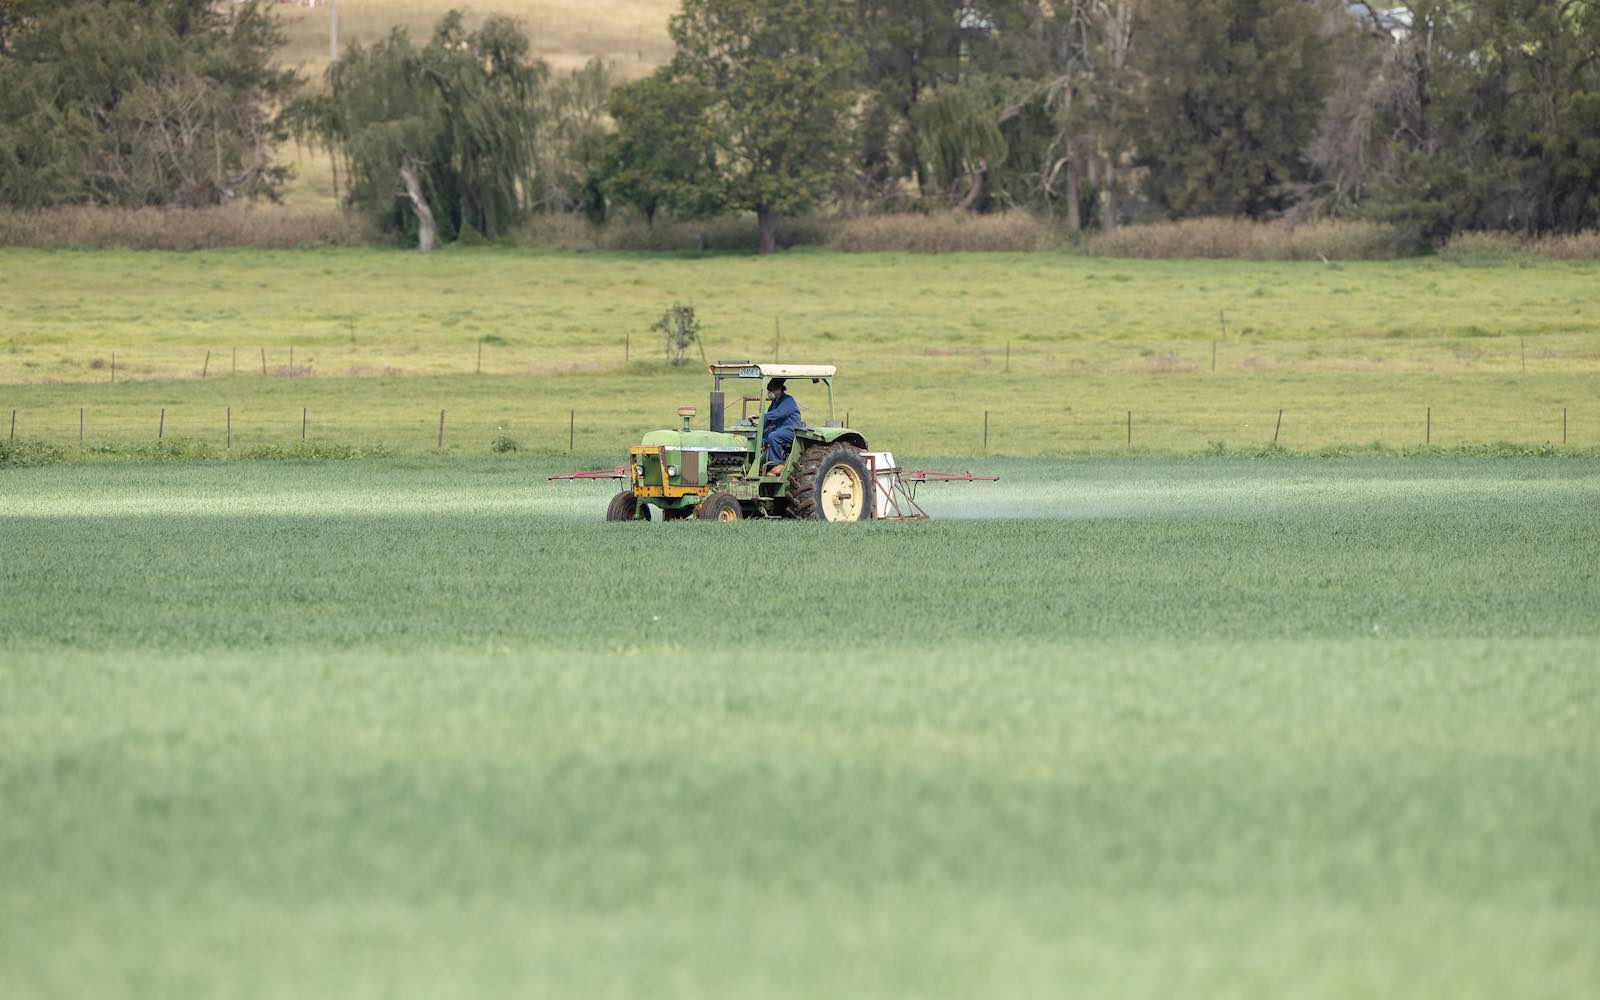 A farmer sprays his crop in Dungowan, north-west New South Wales, Australia, May 2020 (Mark Kolbe/Getty Images)